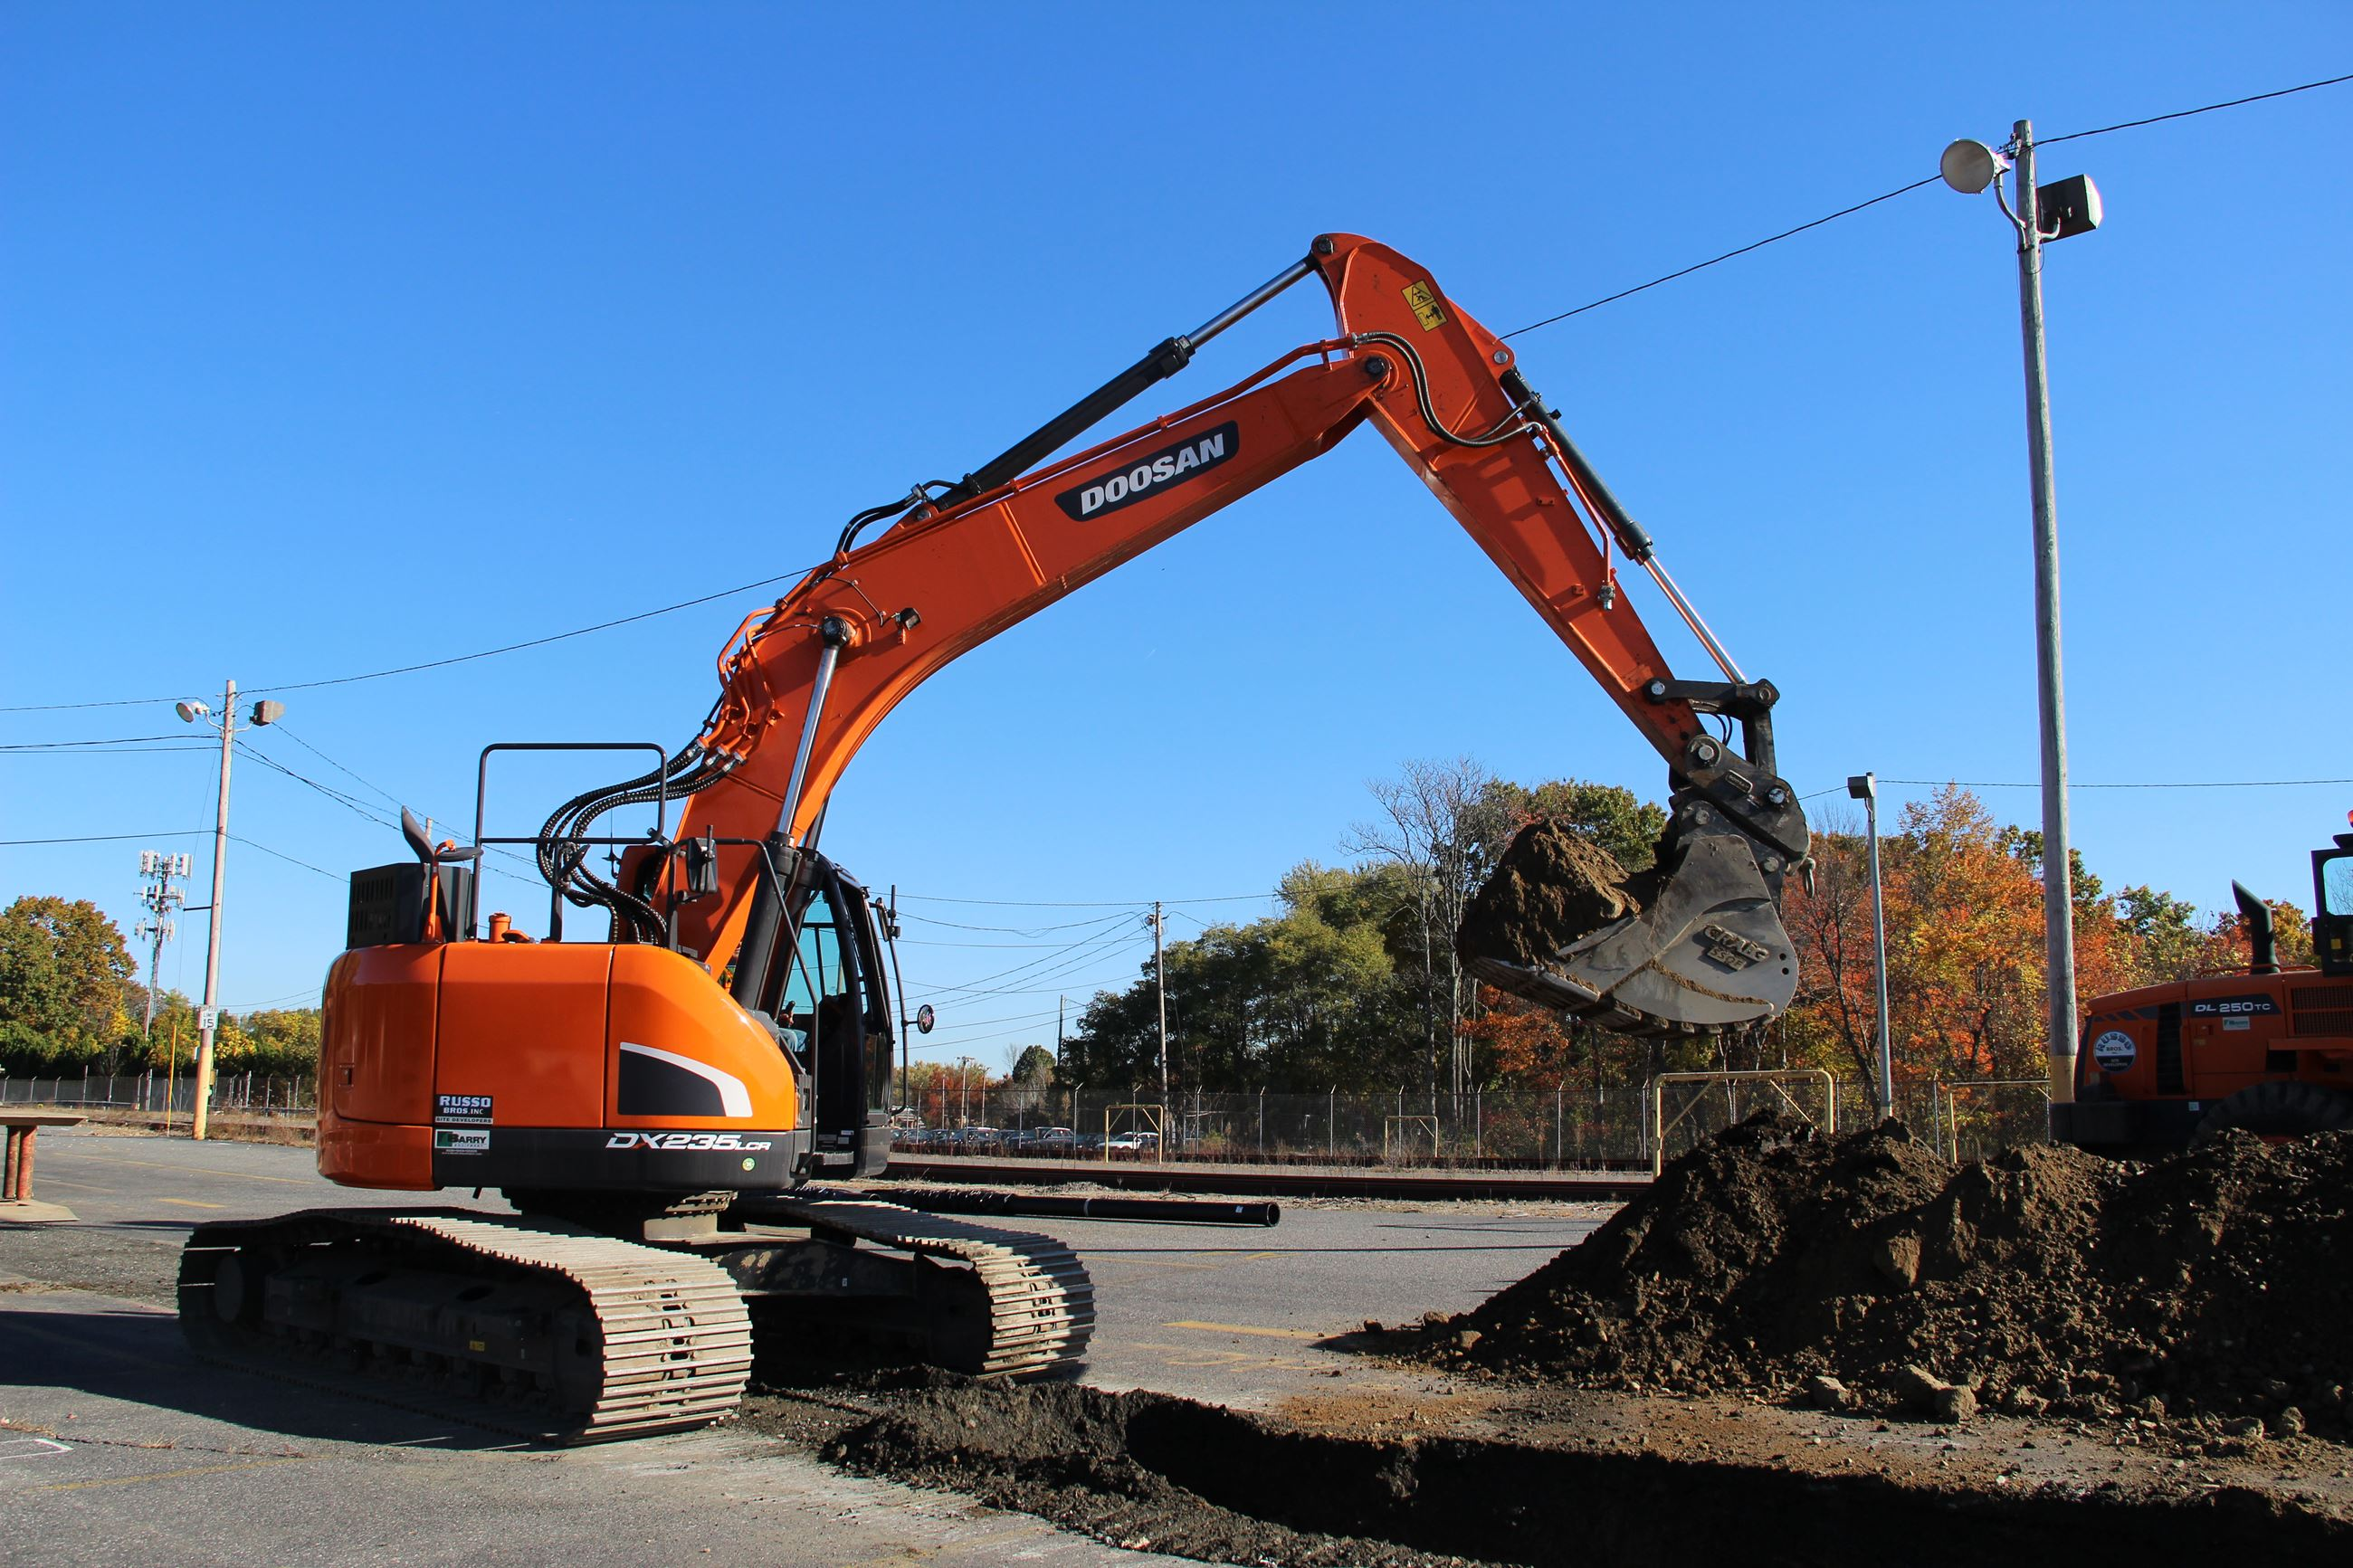 Excavator digging a trench for new water main